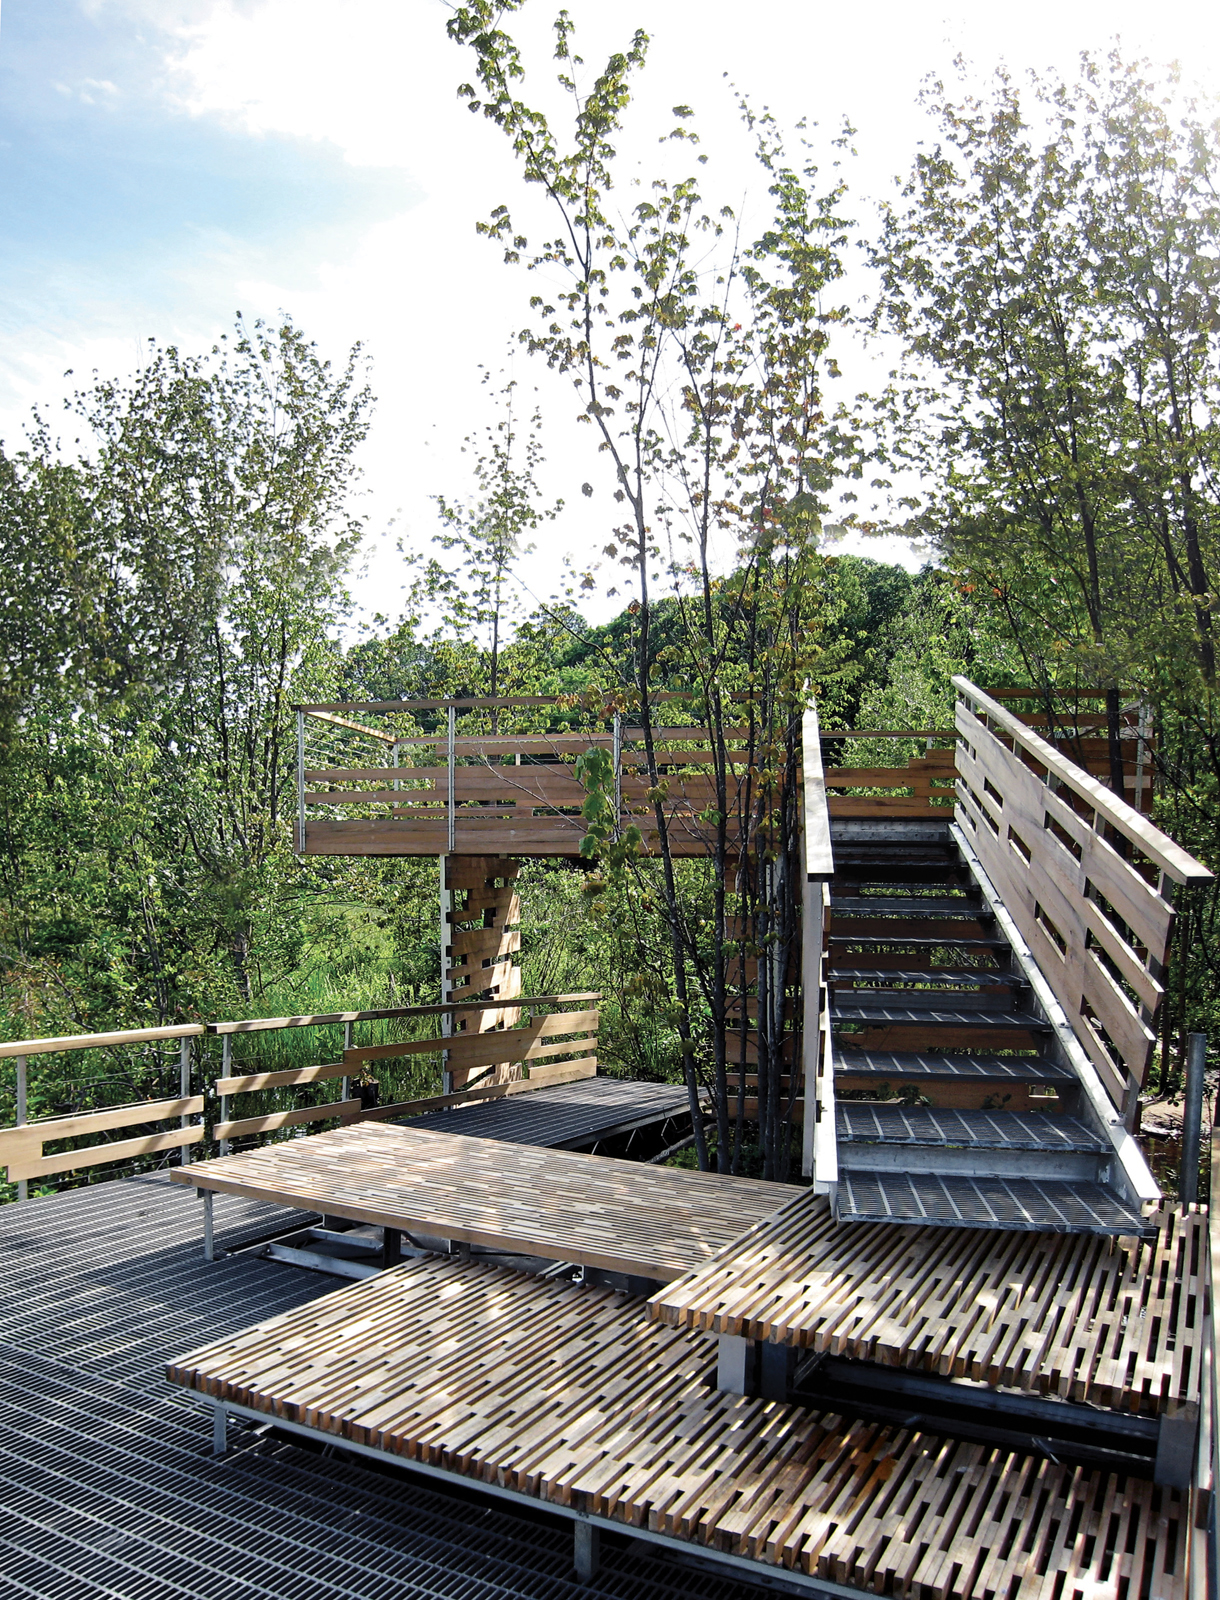 wildlife sanctuary viewing platform